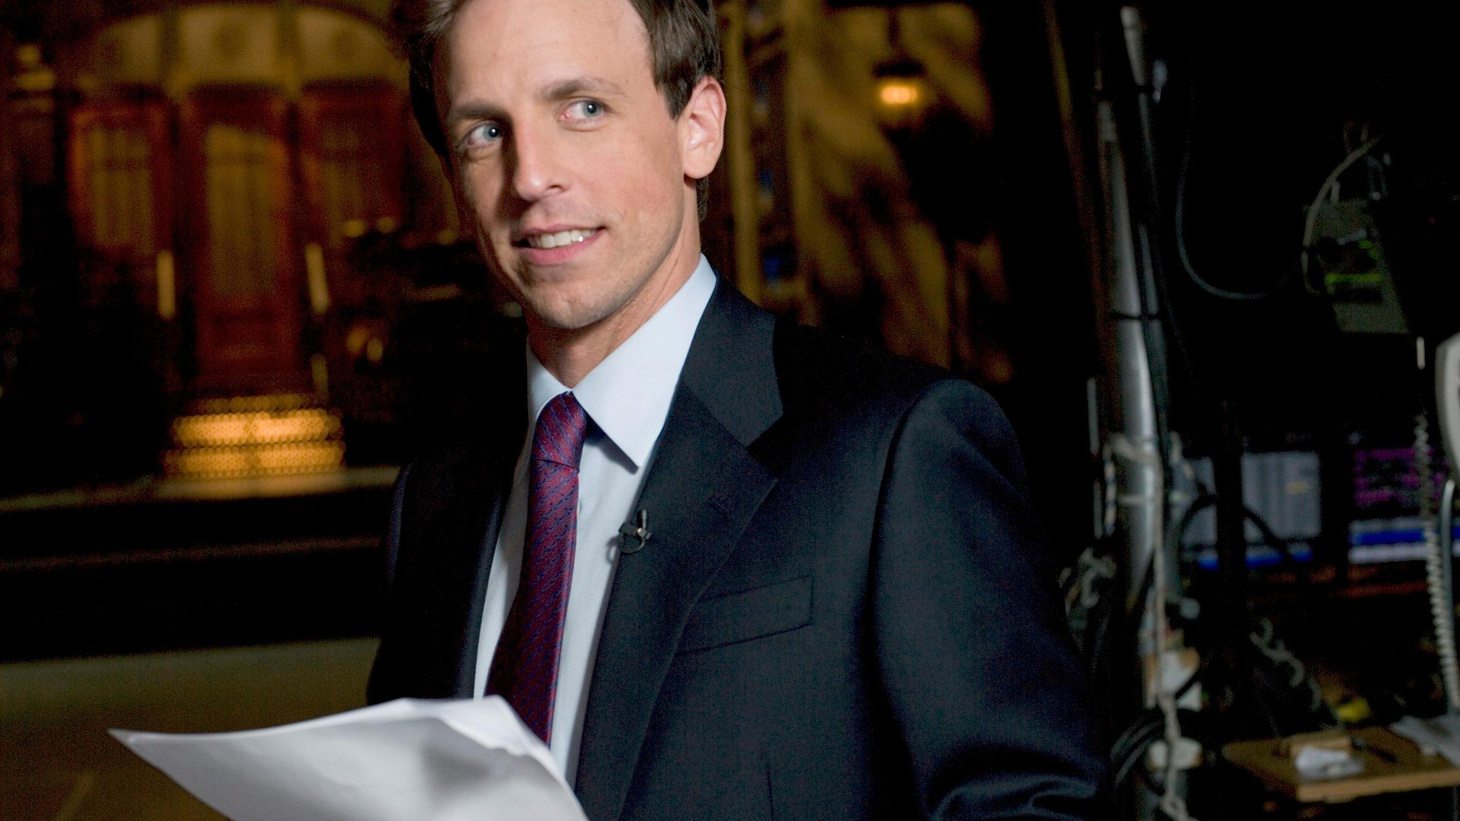 """Seth Meyers is the head writer for """"Saturday Night Live"""" and anchor of """"Weekend Update"""" and claims you will know everything about him through his five song picks, ranging from the funky soul of Al Green to the comedy of country singer John Prine and his favorite band, Wilco."""